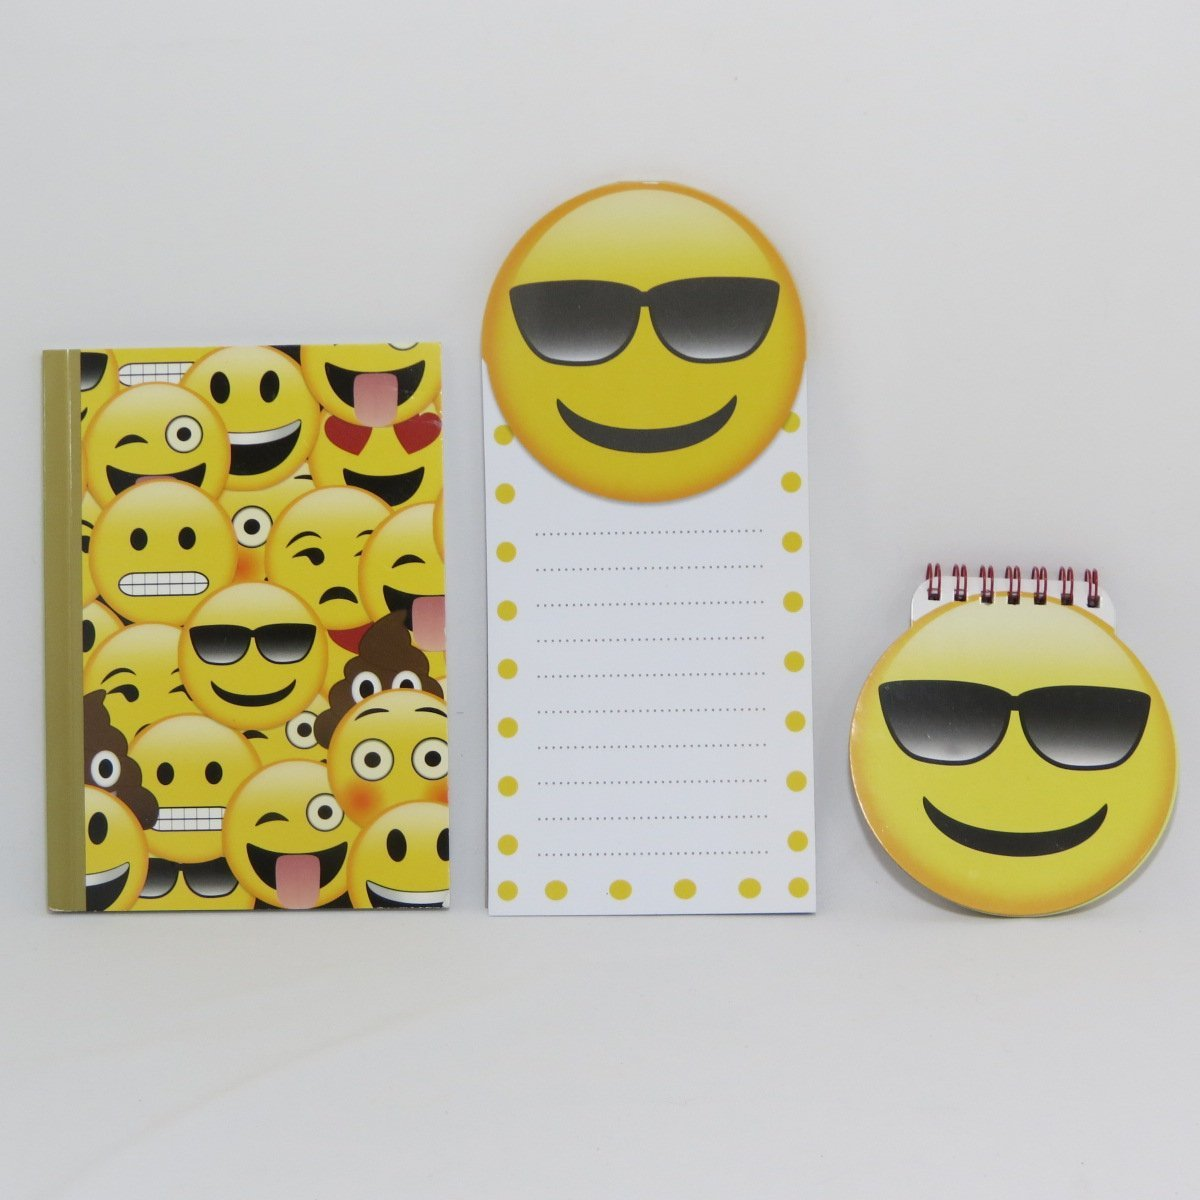 Funky Emoji Wall Art Copy And Paste Image Collection - The Wall Art ...